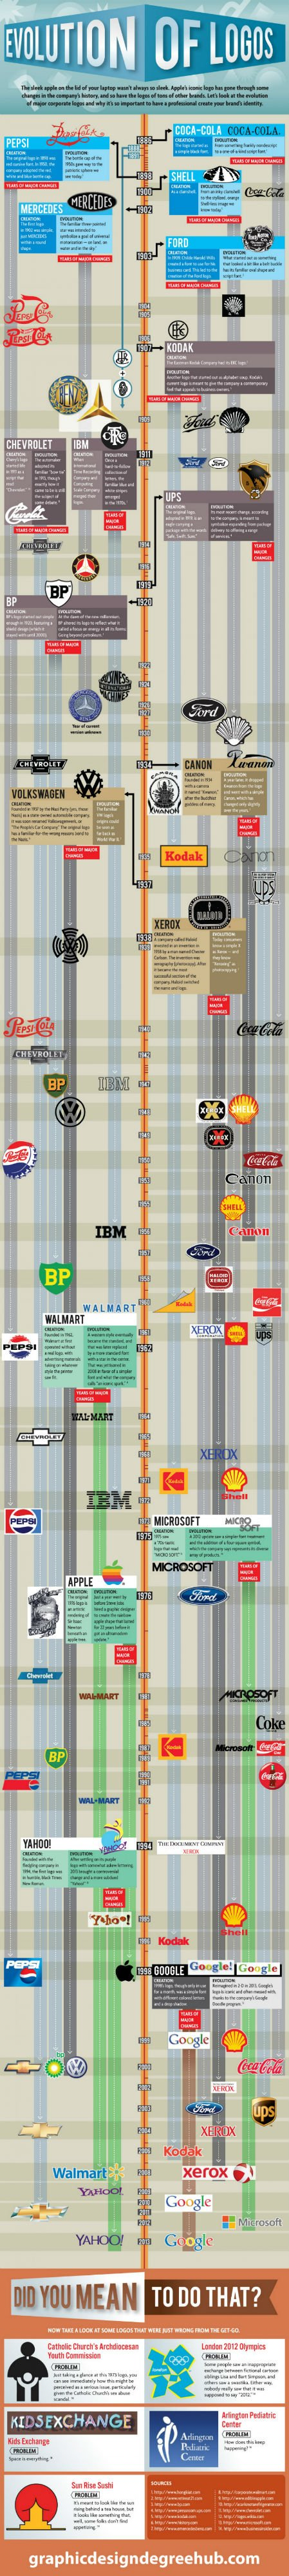 Big Brands and the Evolutionary Logo